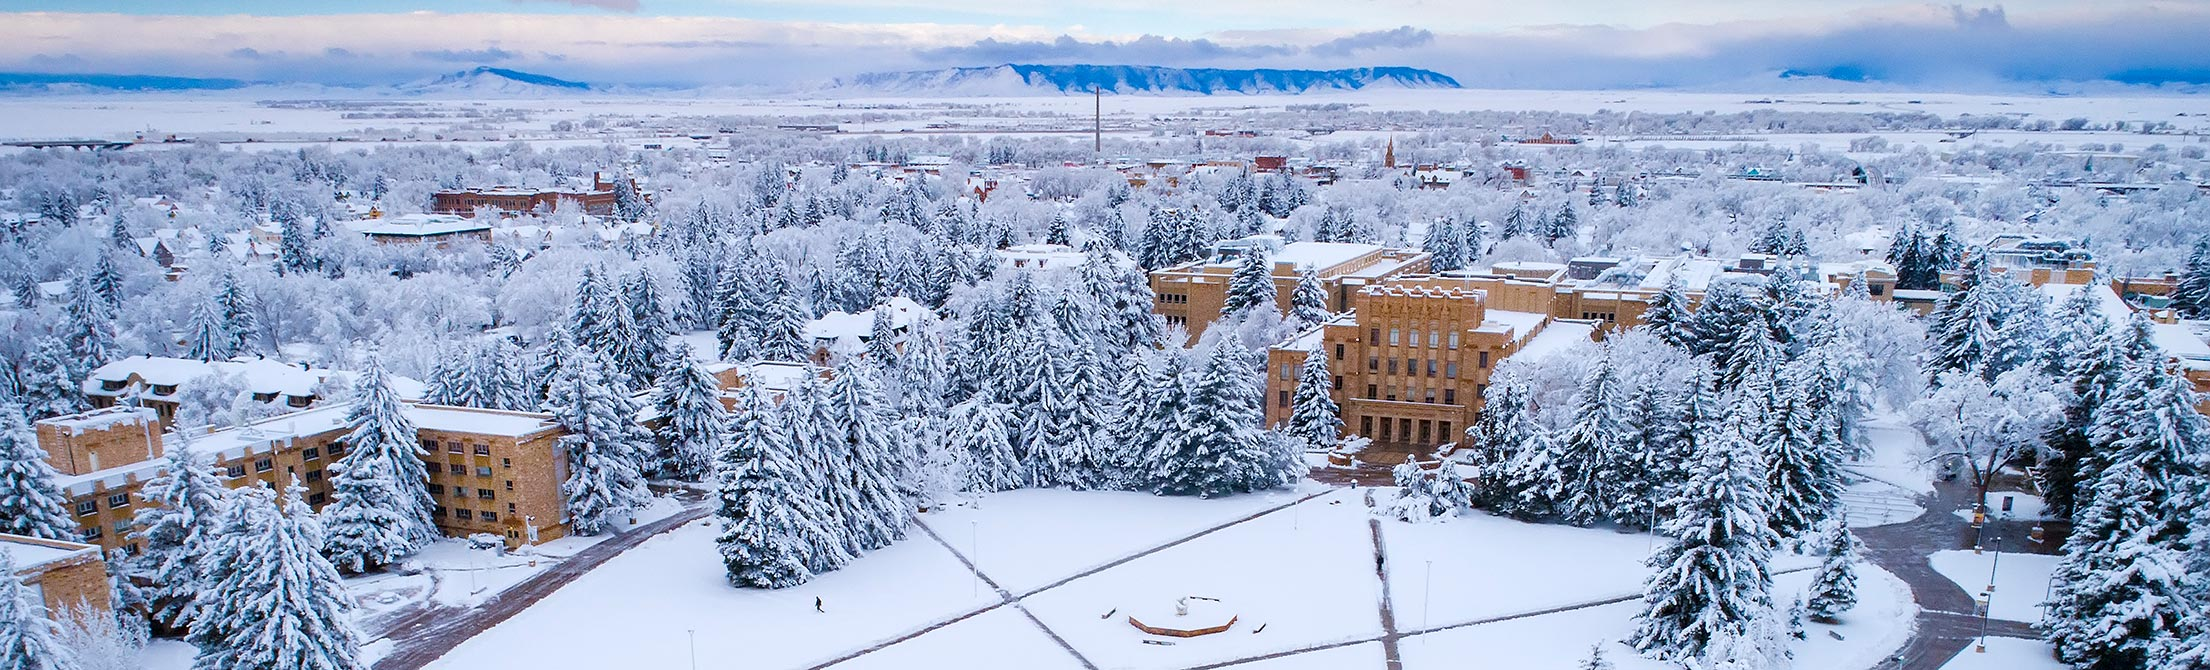 Aerial view of the University of Wyoming campus during winter with snow blanketing the buildings, trees, and ground